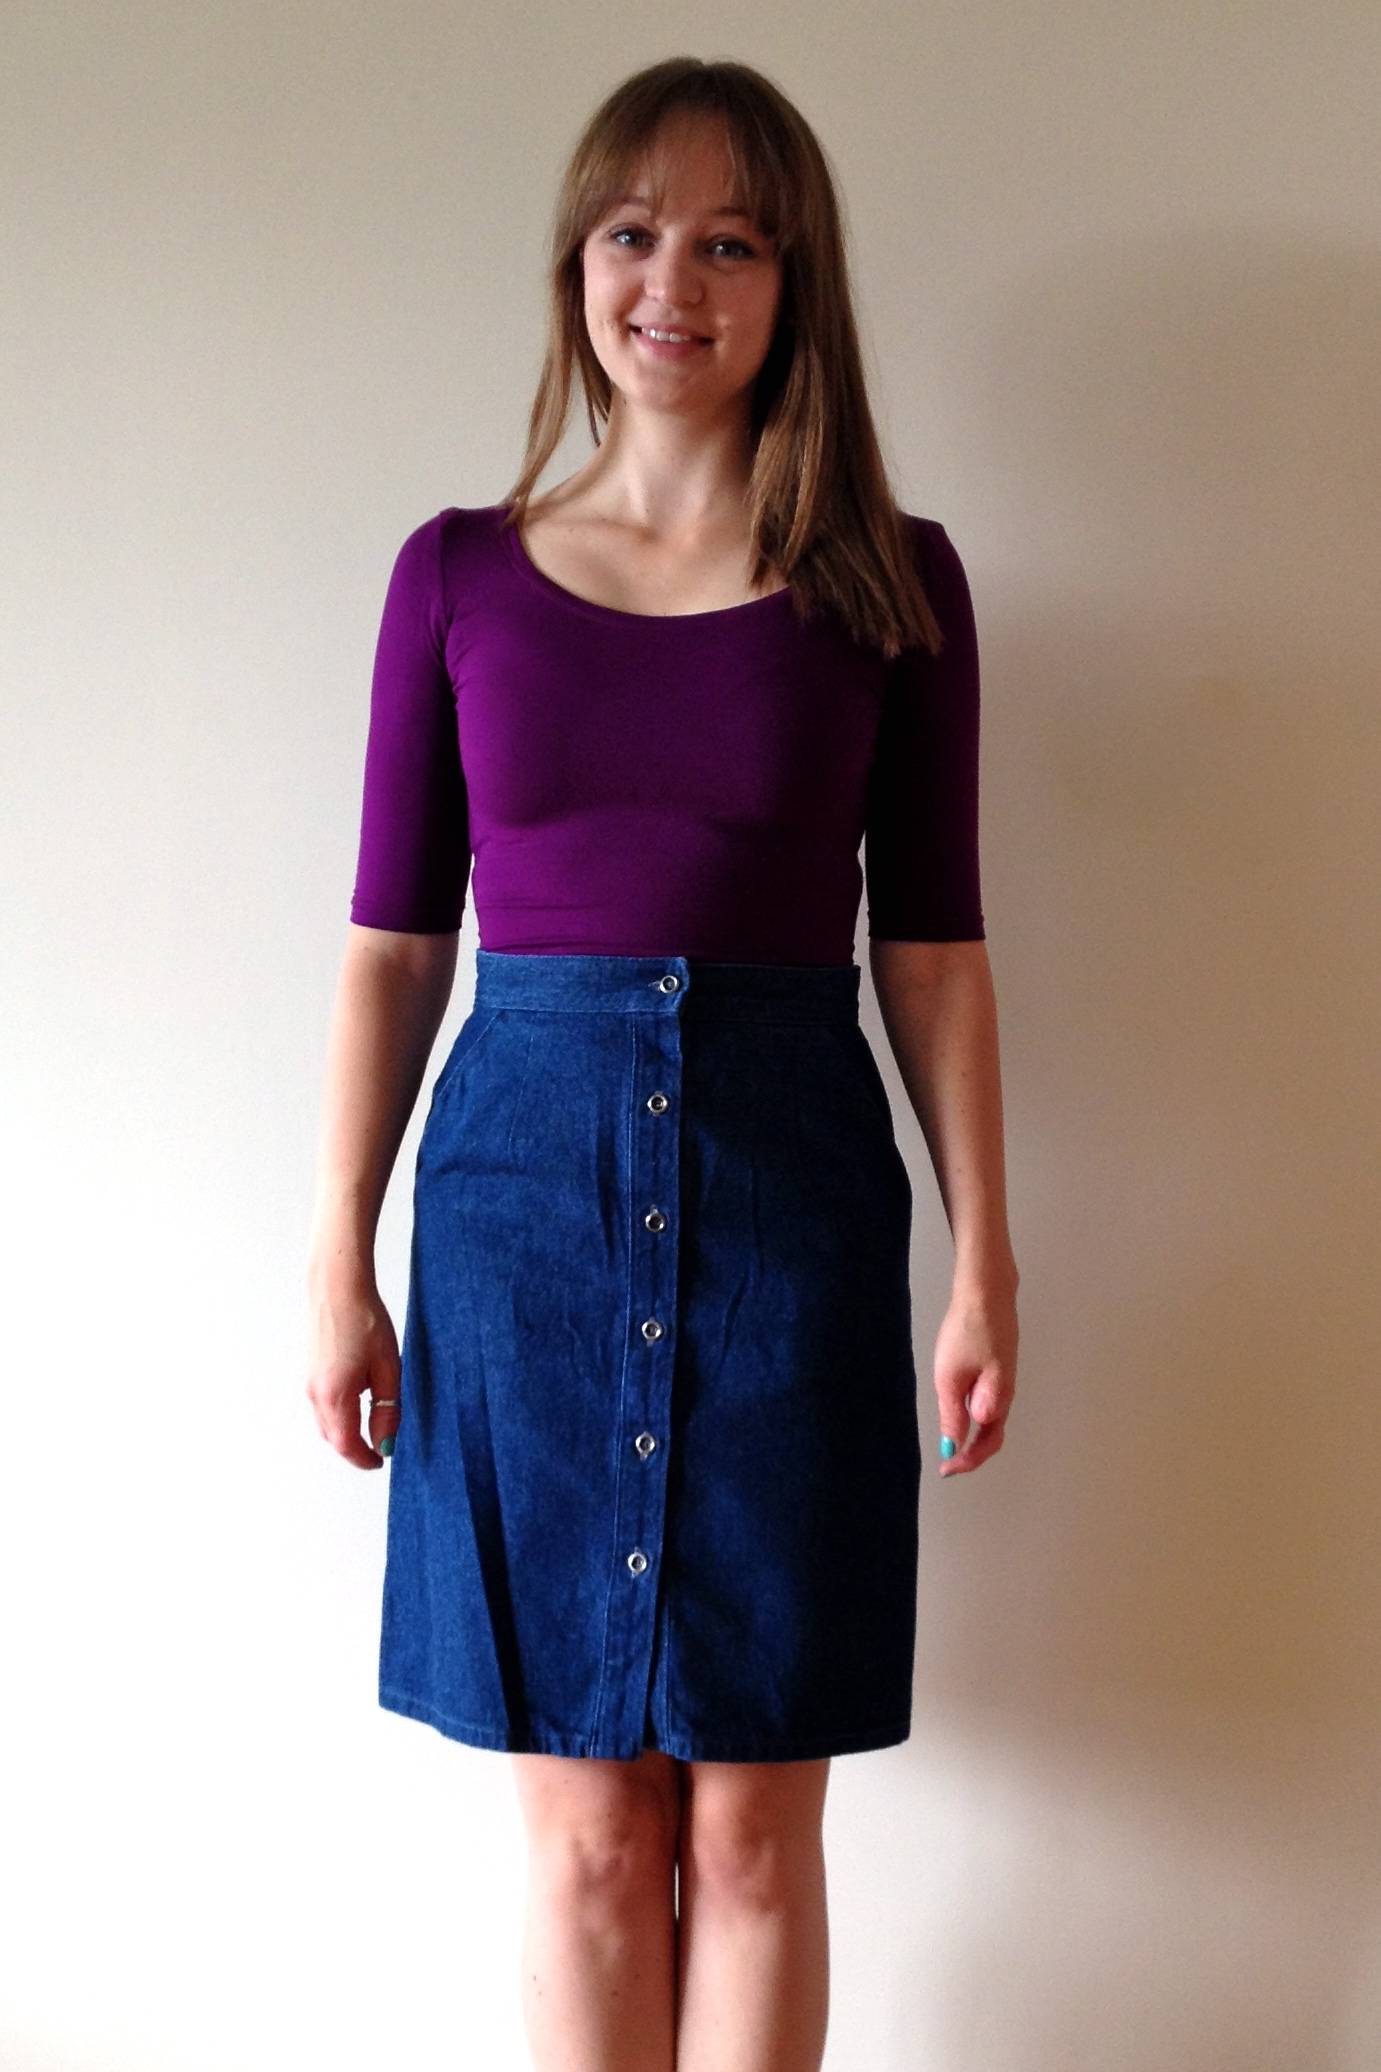 Bamboo Jersey Agnes Top & Denim M6696 Skirt – Sewing ...